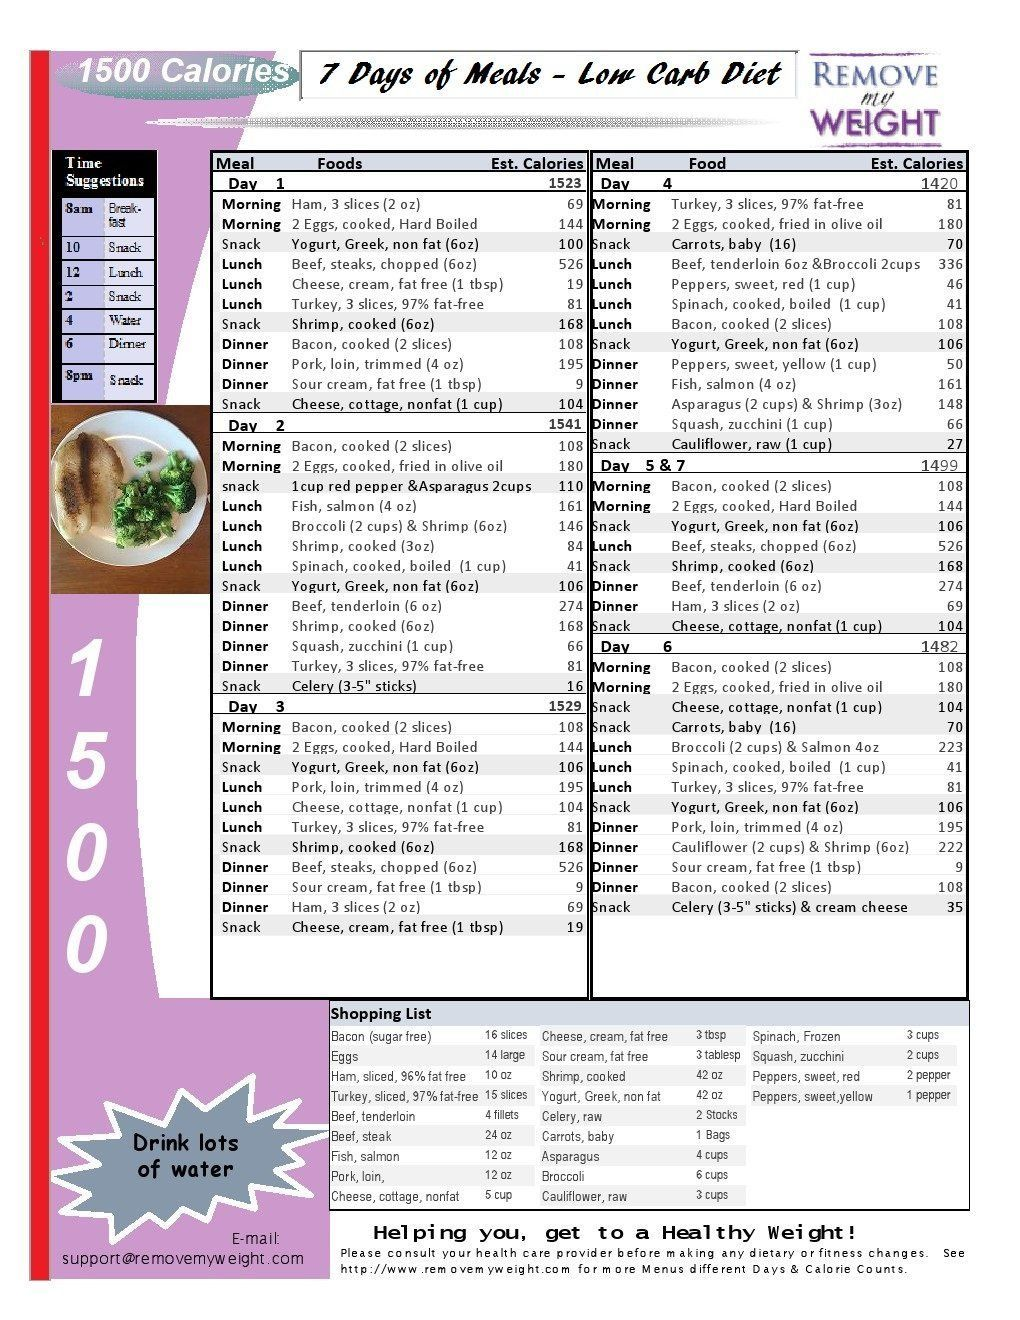 008 Excellent 1400 Calorie Sample Meal Plan Pdf High Def Full